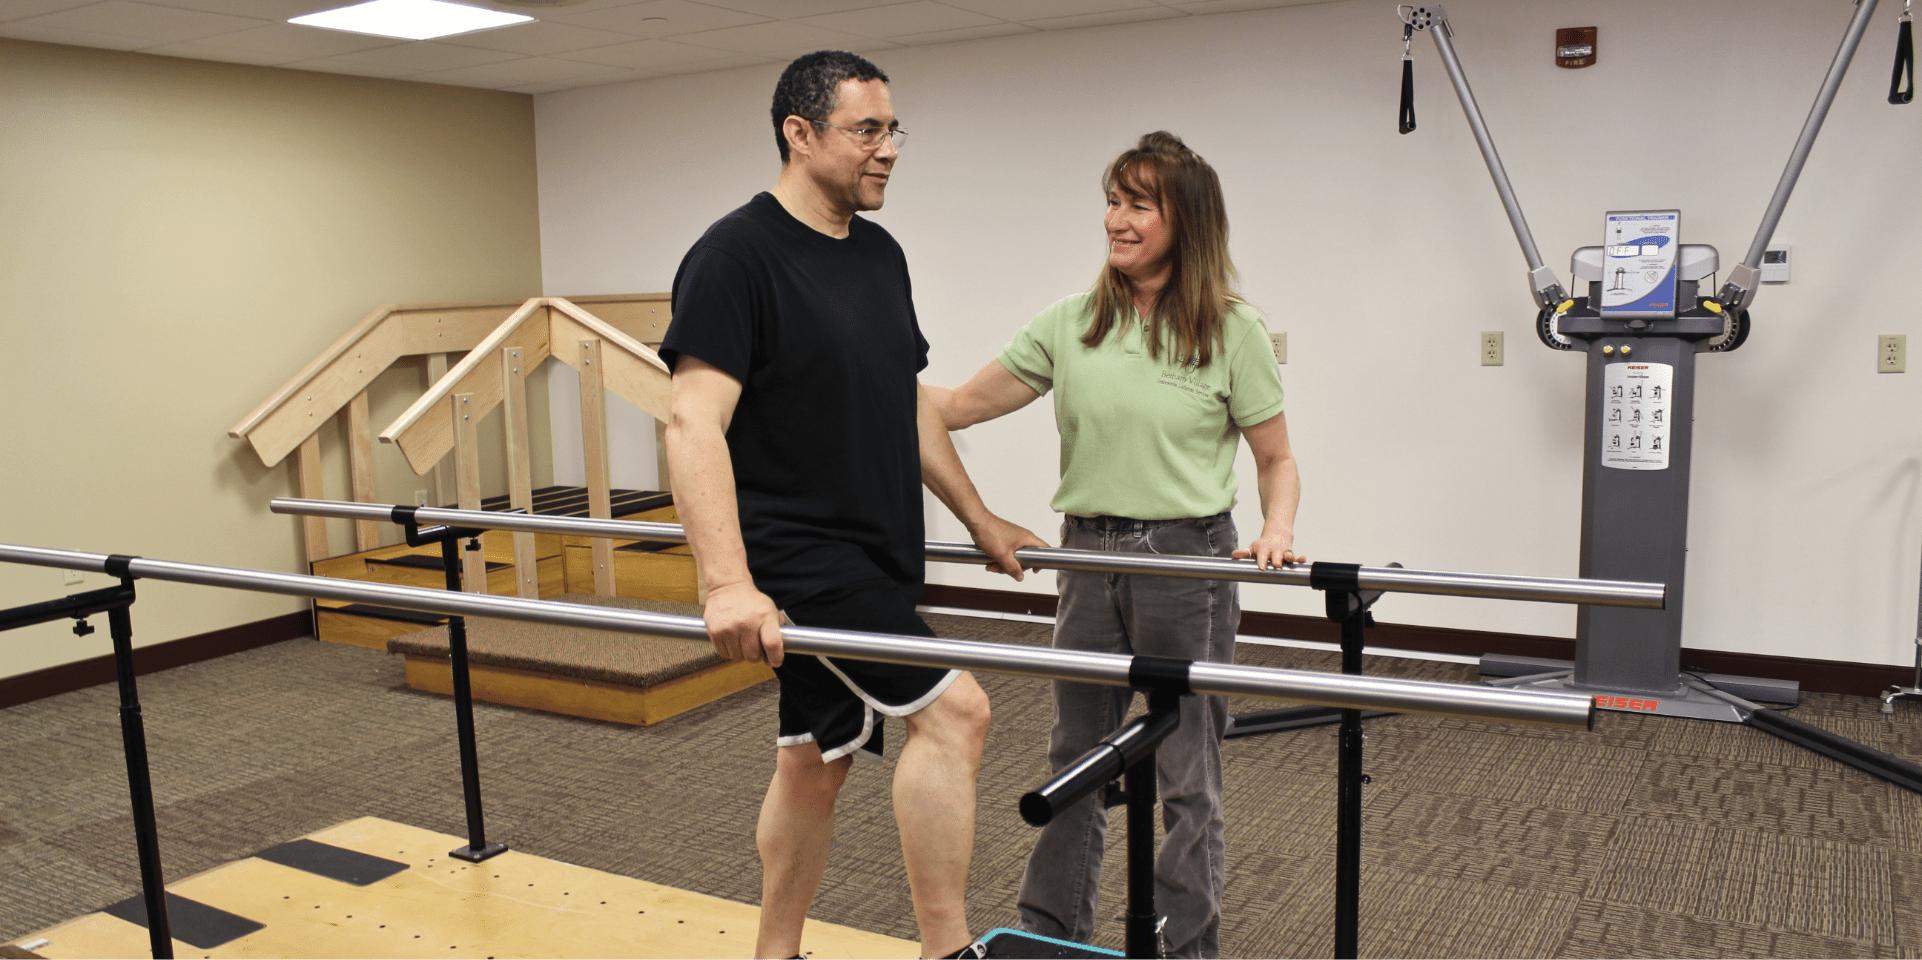 Bethany Rehab Center patient with aide walking with parallel bars